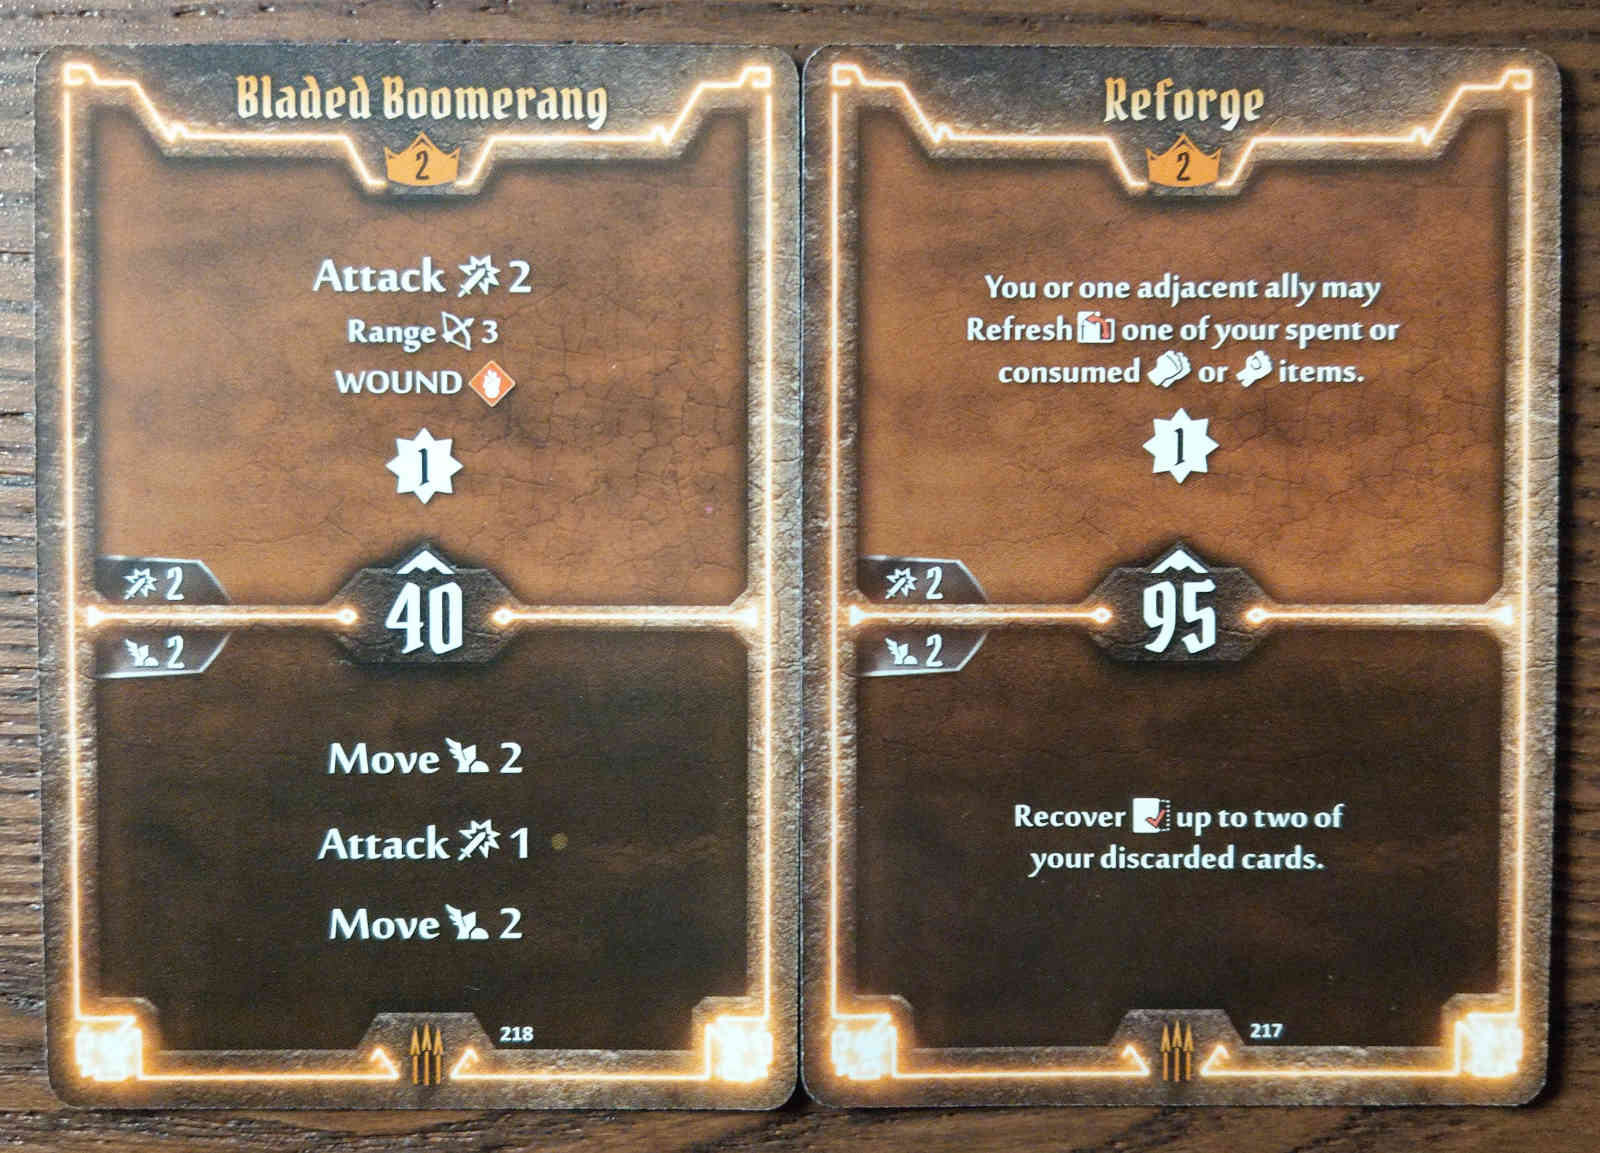 Level 2 Quartermaster cards - Bladed Boomerang and Reforge